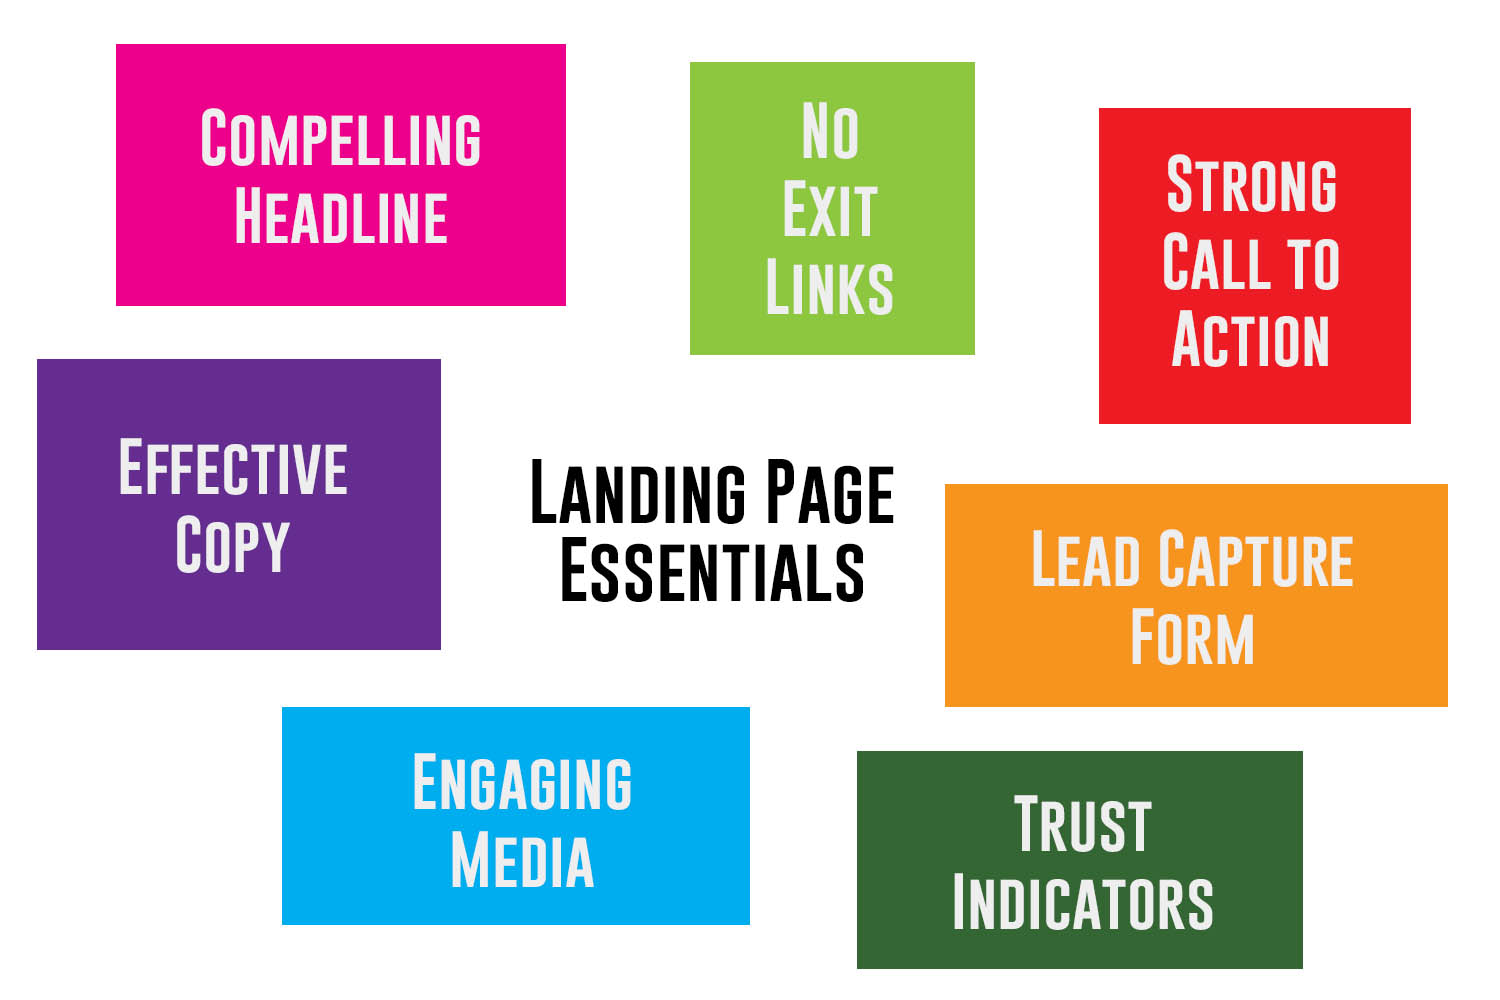 Colored blocks containing landing page essentials: compelling headline, effective copy, engaging media, lead capture form, strong call to action, and no exit links.